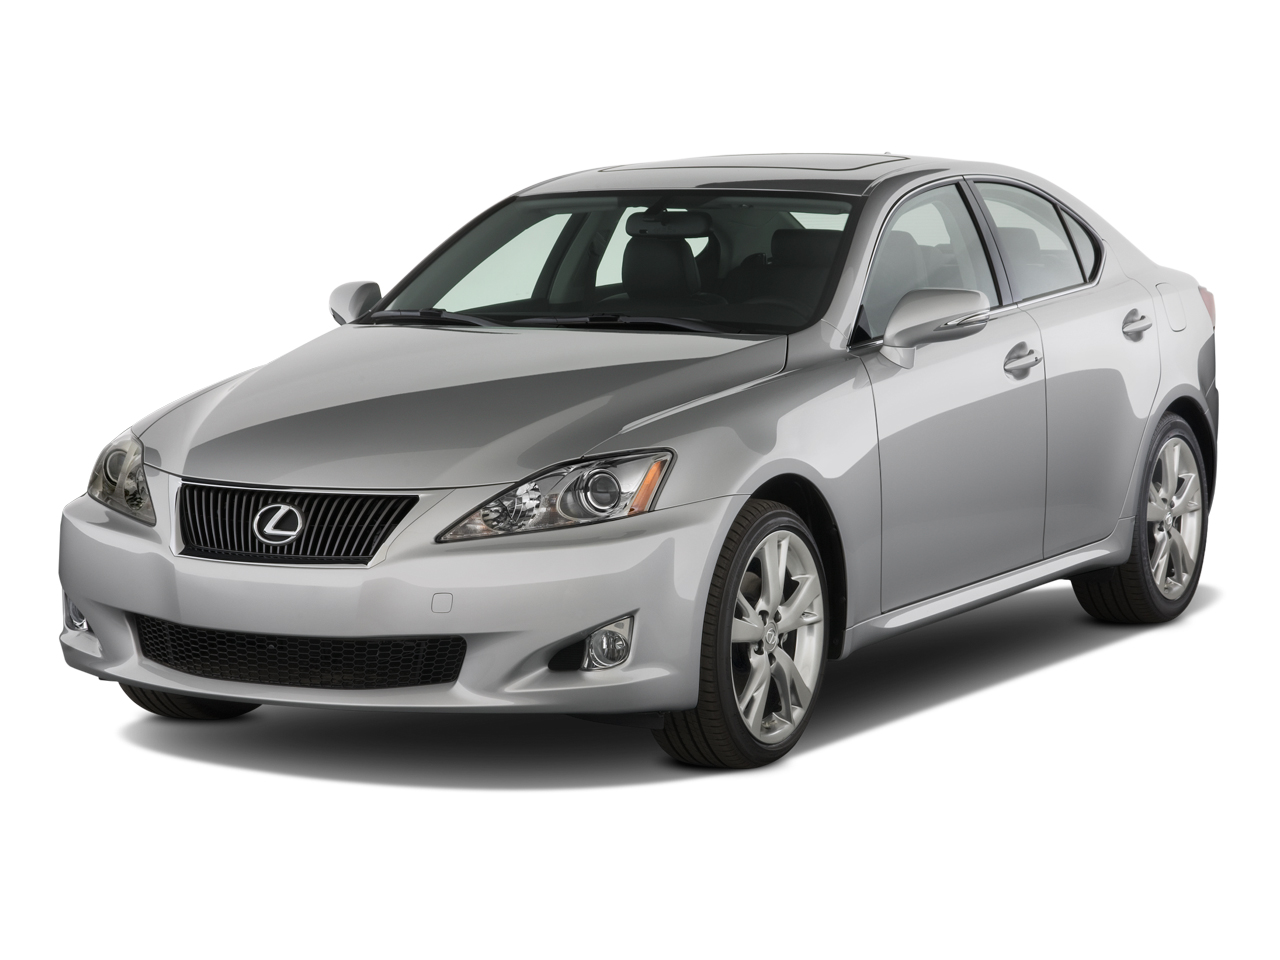 2010 Lexus Is 250 Review Ratings Specs Prices And Photos The Car Connection